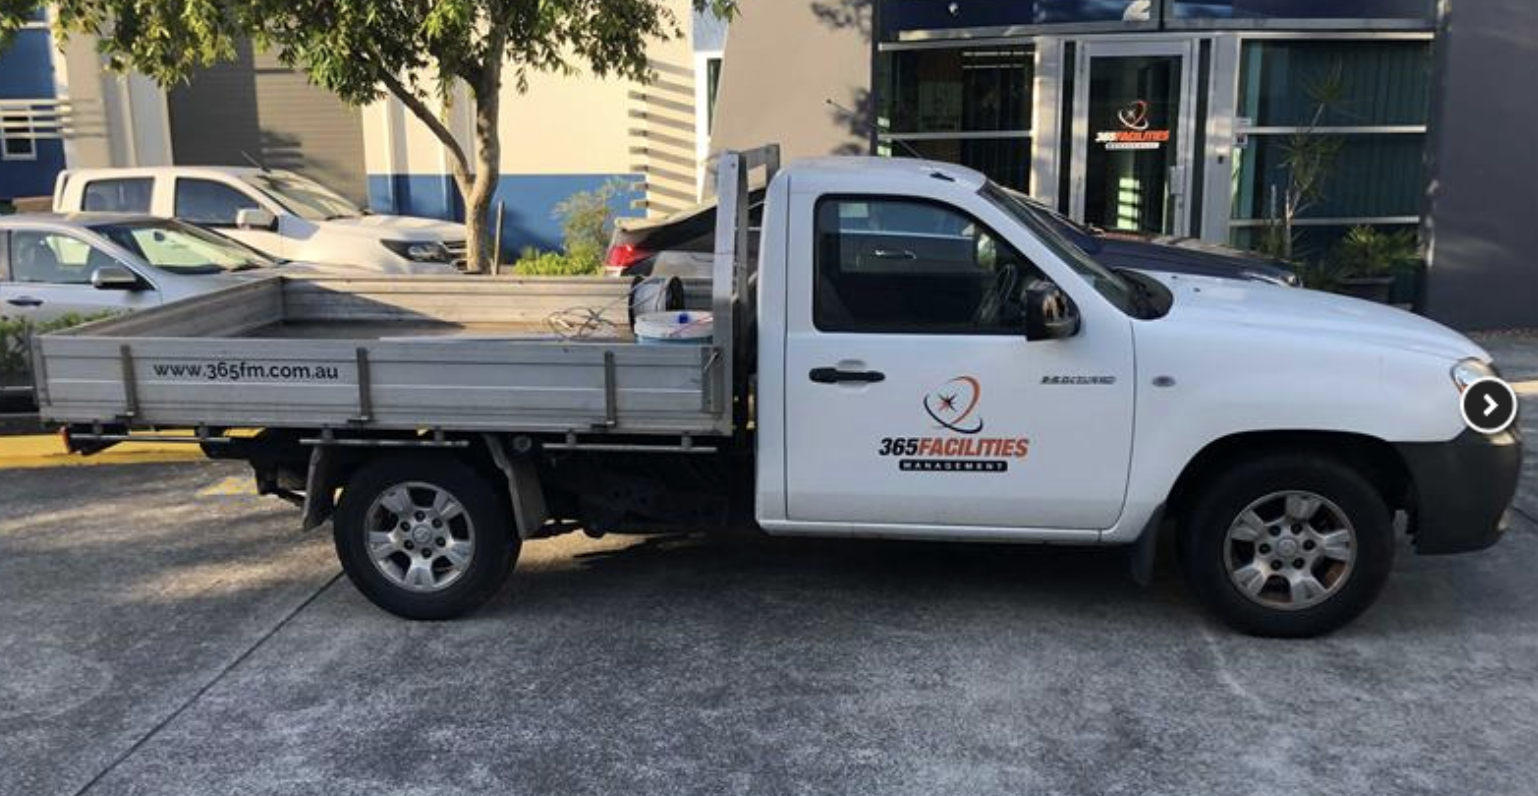 Picture of Thudugalage's 2011 Mazda BT-50